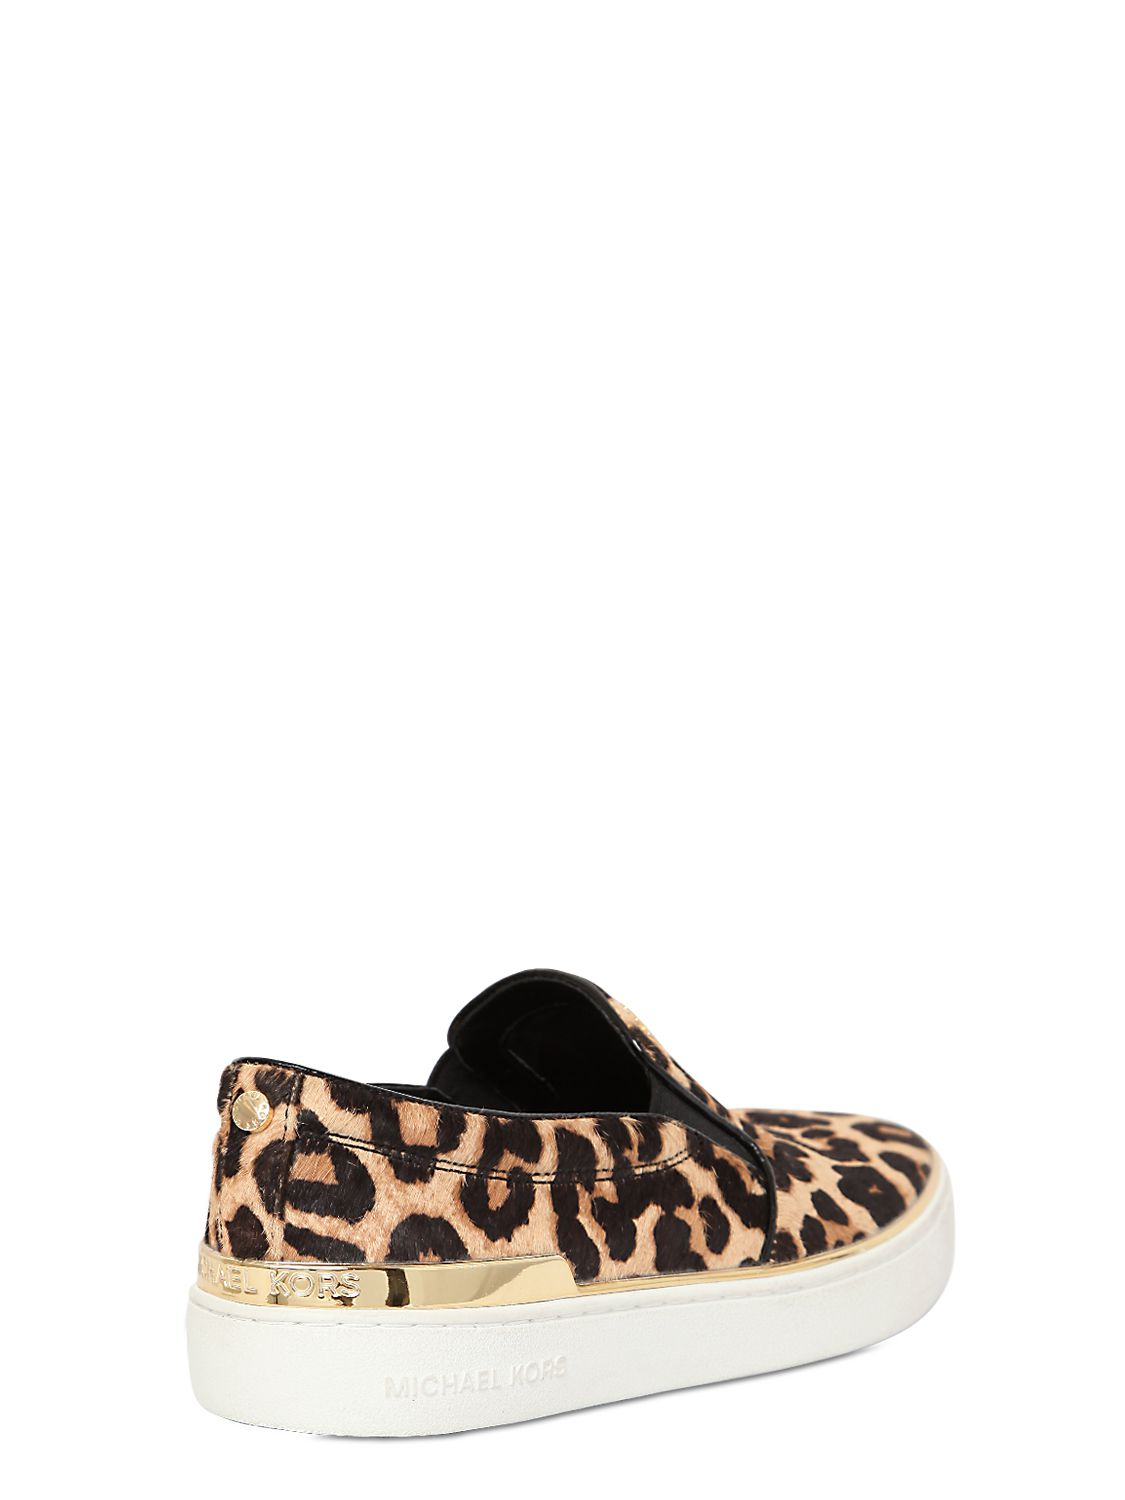 michael michael kors leopard print ponyskin slip on sneakers lyst. Black Bedroom Furniture Sets. Home Design Ideas